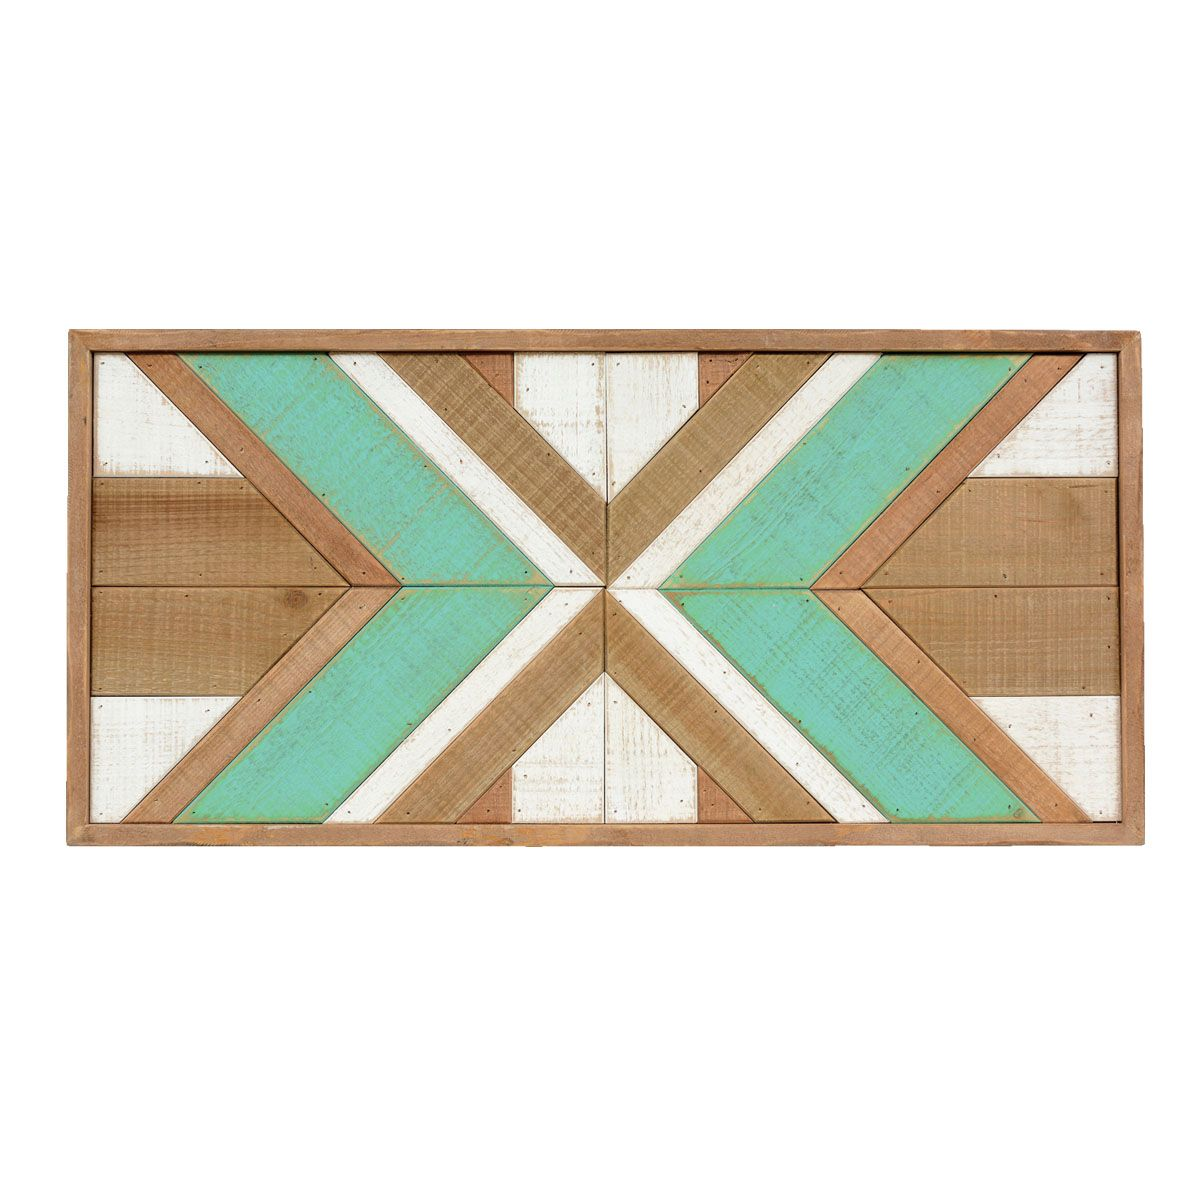 Turquoise Southwest Blanket Wood Wall Art - CLEARANCE